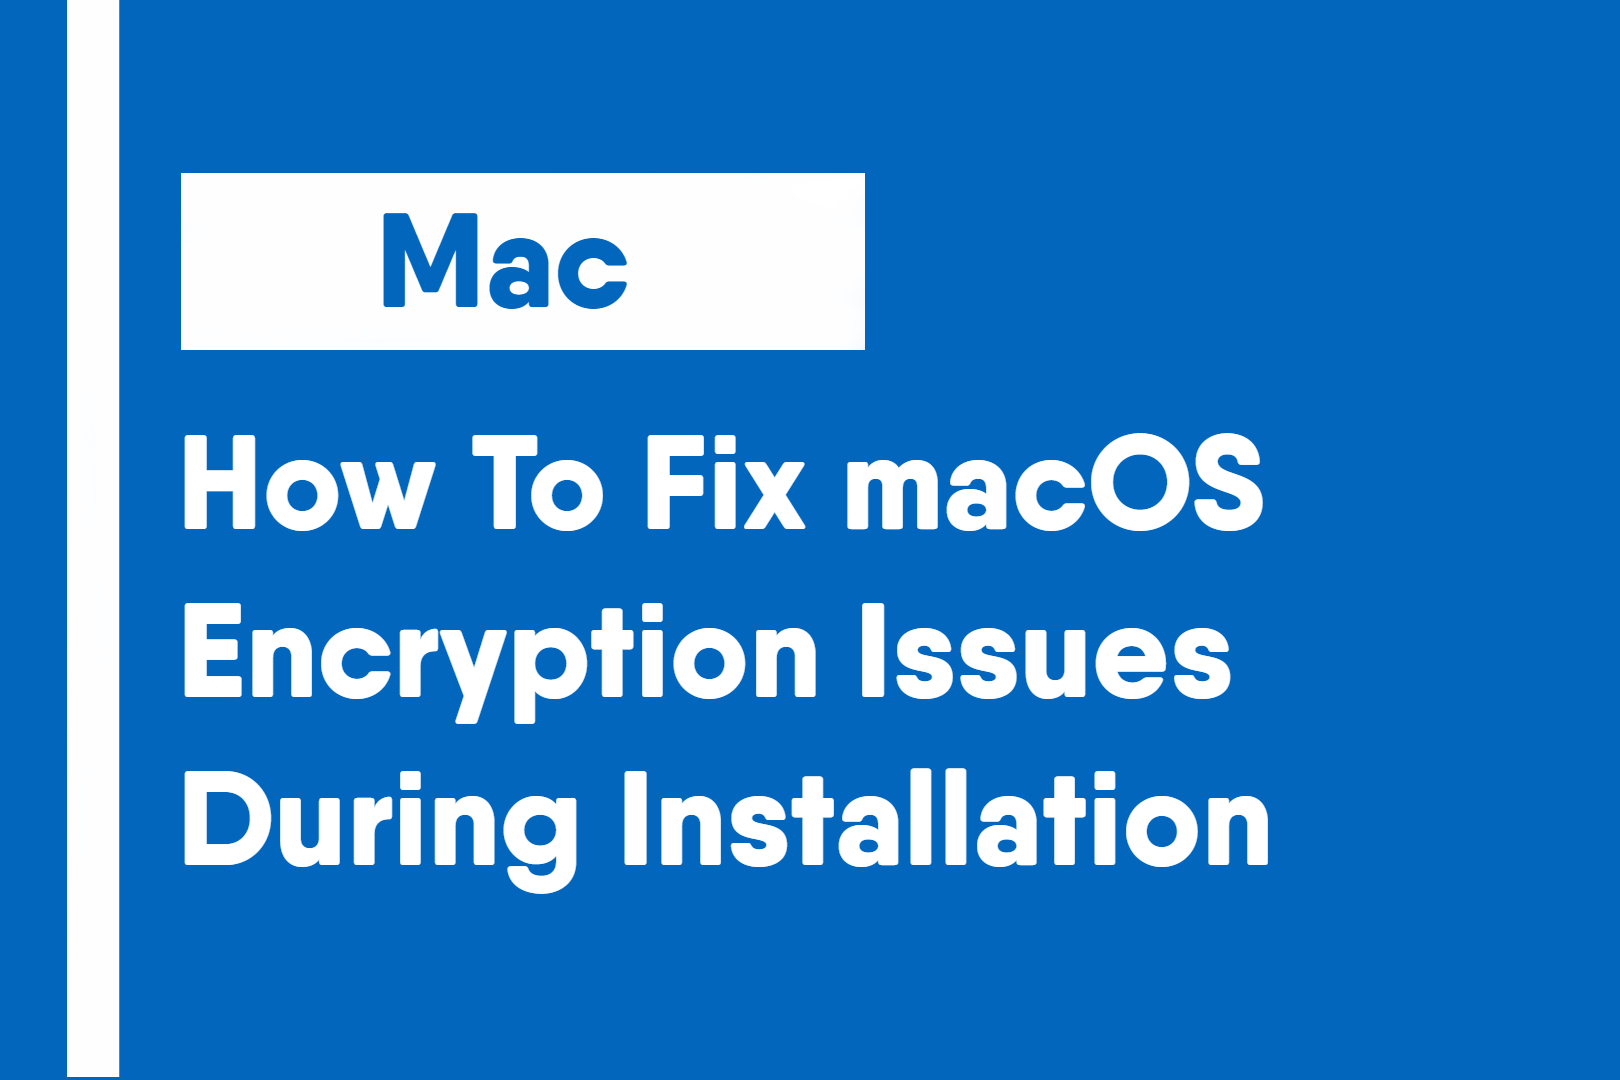 How To Fix macOS Encryption Issues During Installation